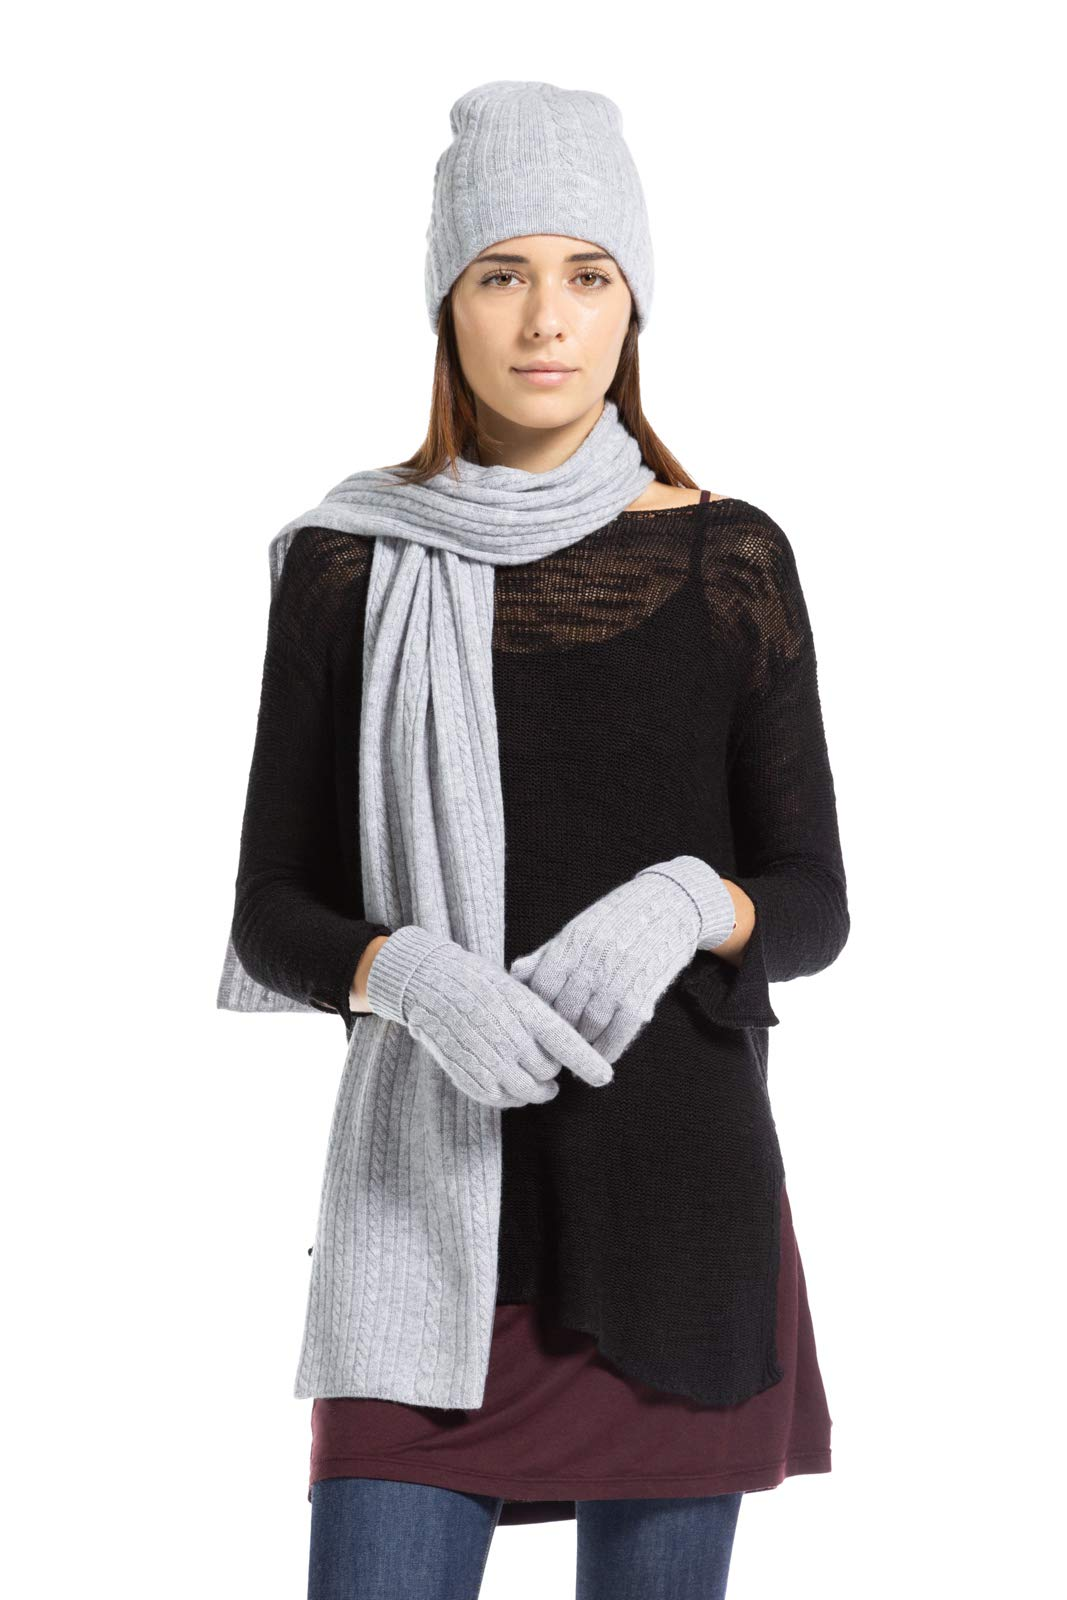 Fishers Finery Women's 100% Cashmere 3pc Cable Knit Gift Set (Heather Gray) by Fishers Finery